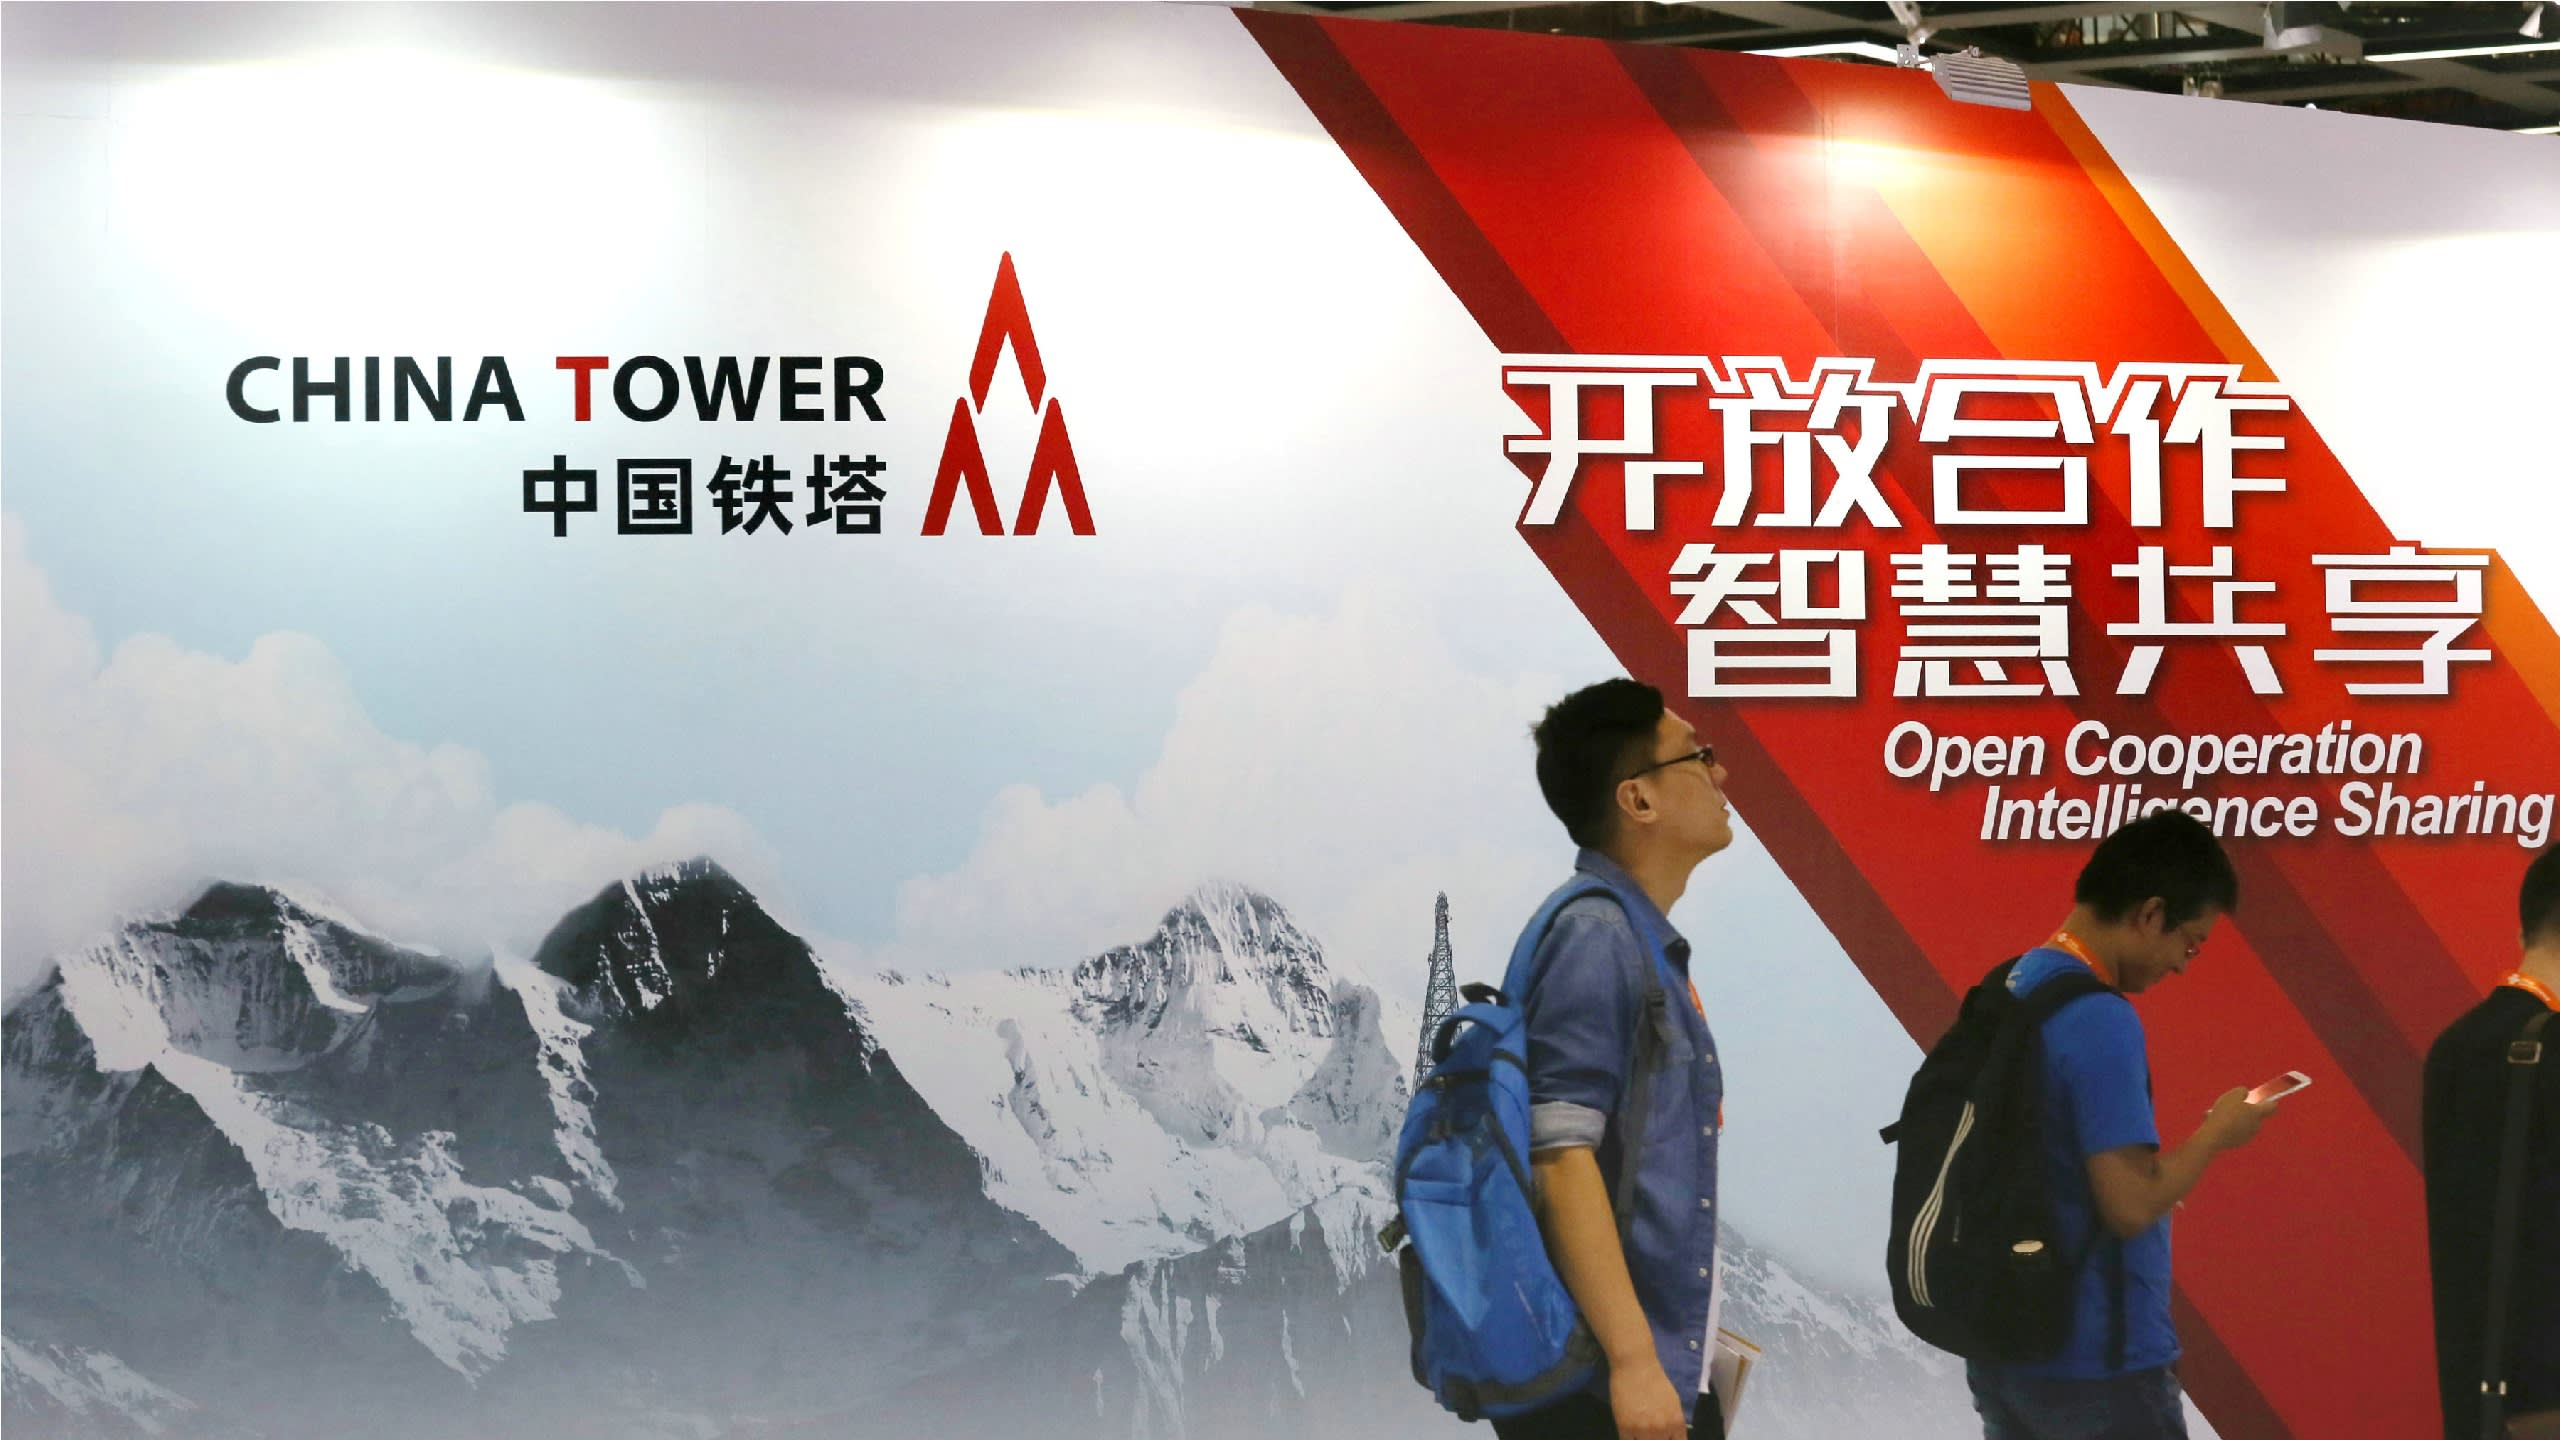 Cell site operator China Tower seeks $10bn IPO - Nikkei Asian Review